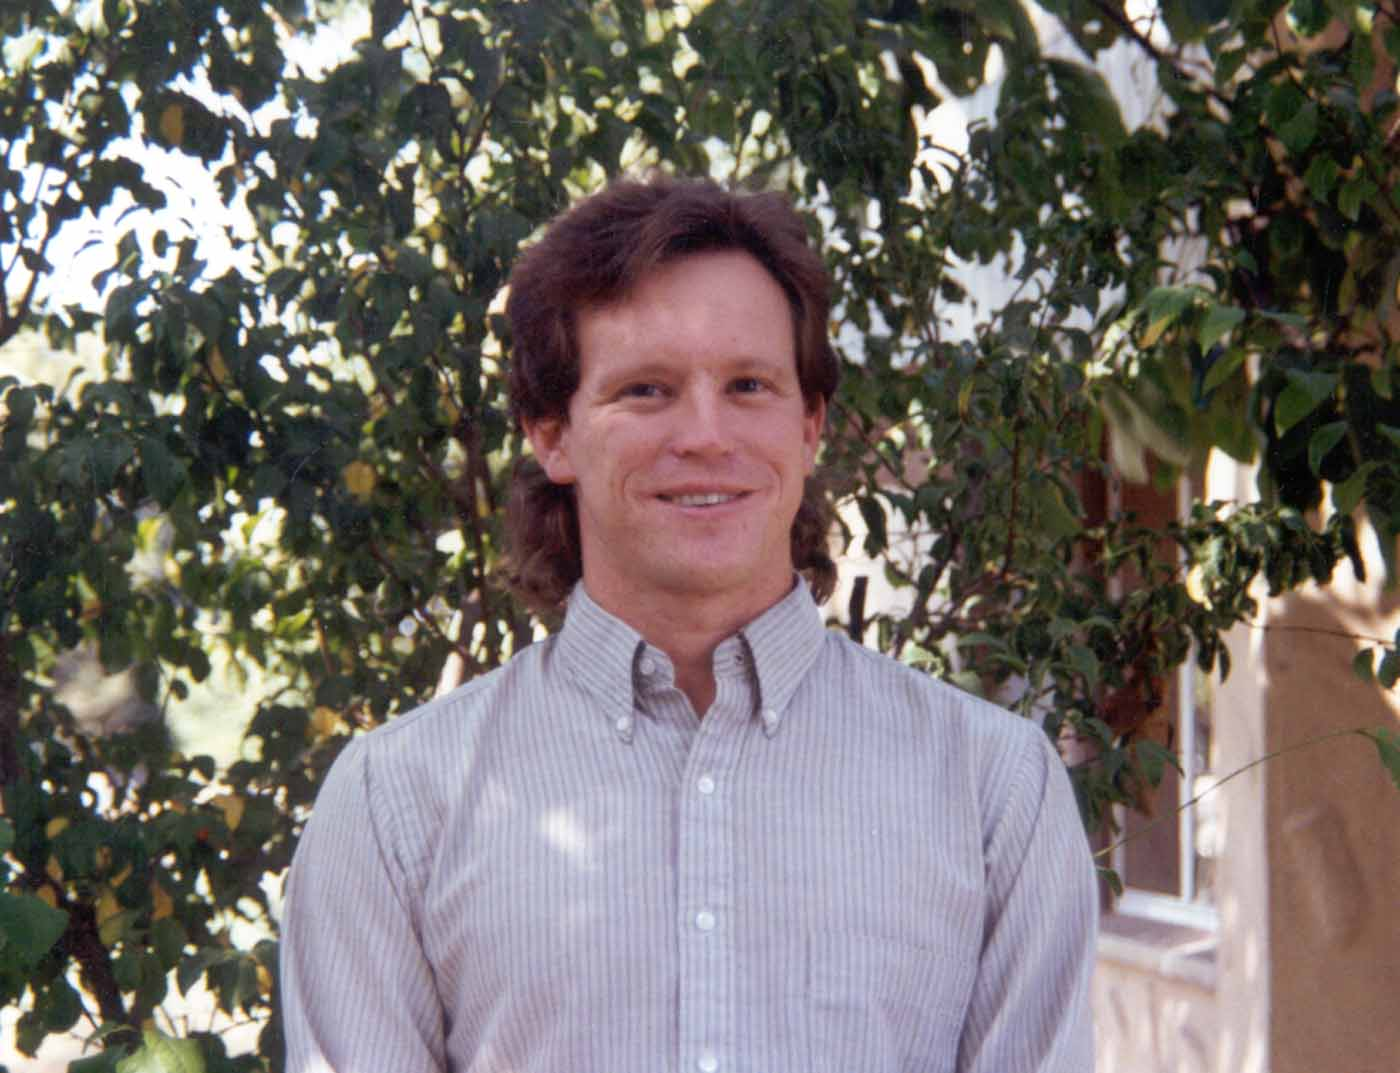 Throw back! - Here is a picture of Andrew taken in 1991.